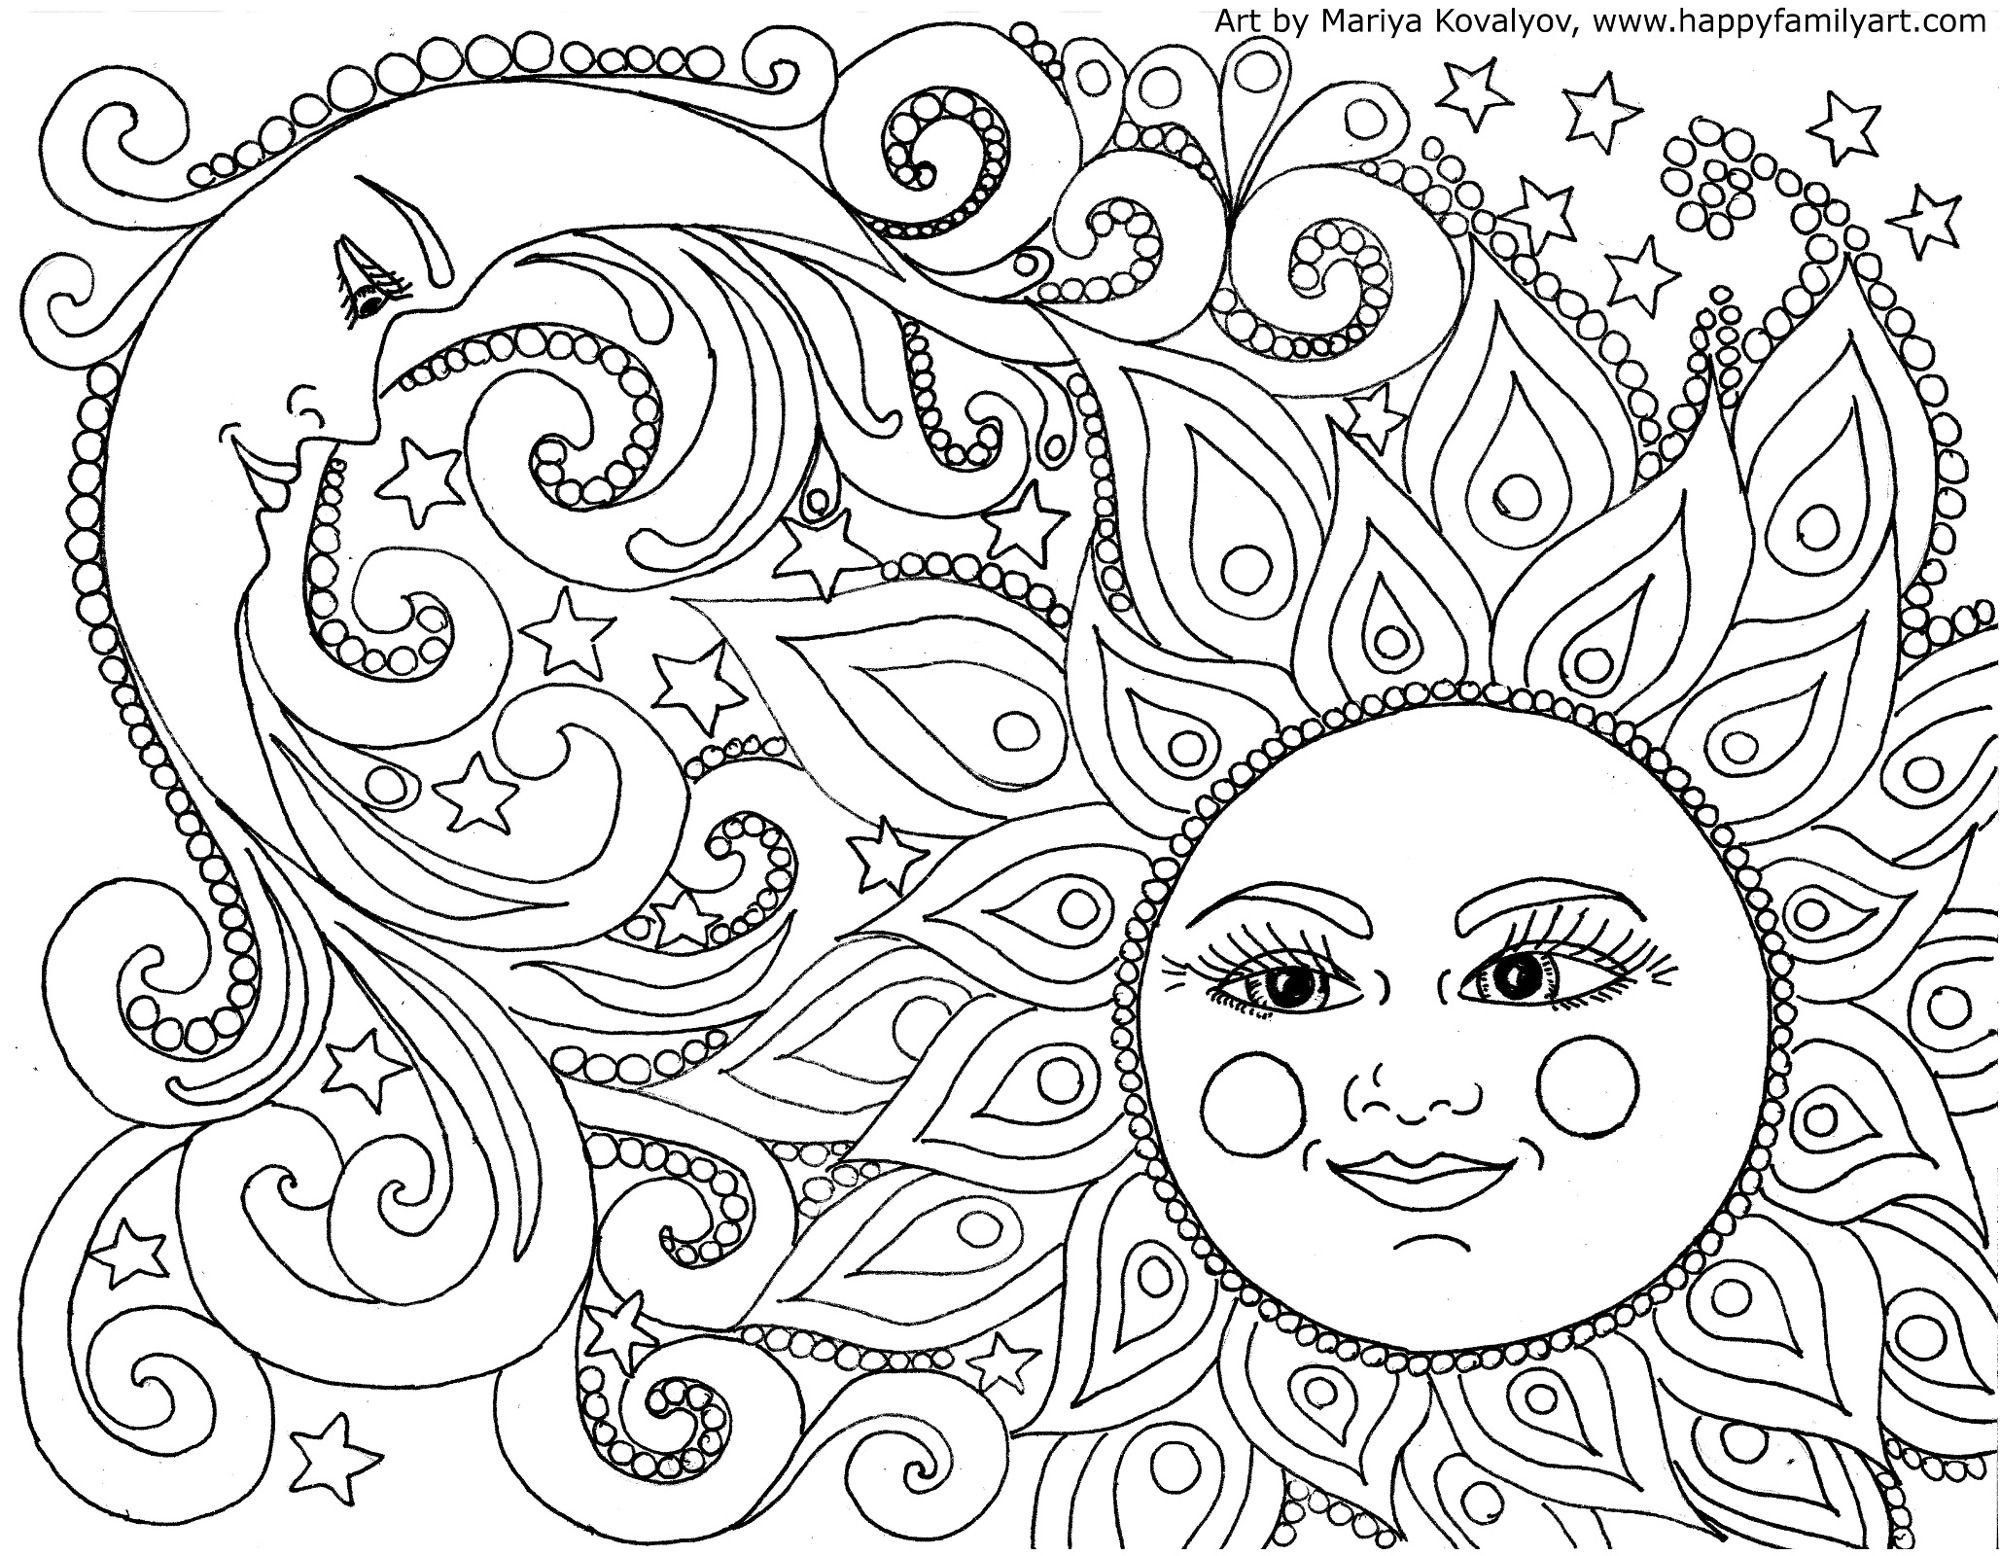 Game Of Thrones Coloring Pages Lovely 20 Best Interactive Coloring Pages For Adults Moon Coloring Pages Mandala Coloring Pages Abstract Coloring Pages